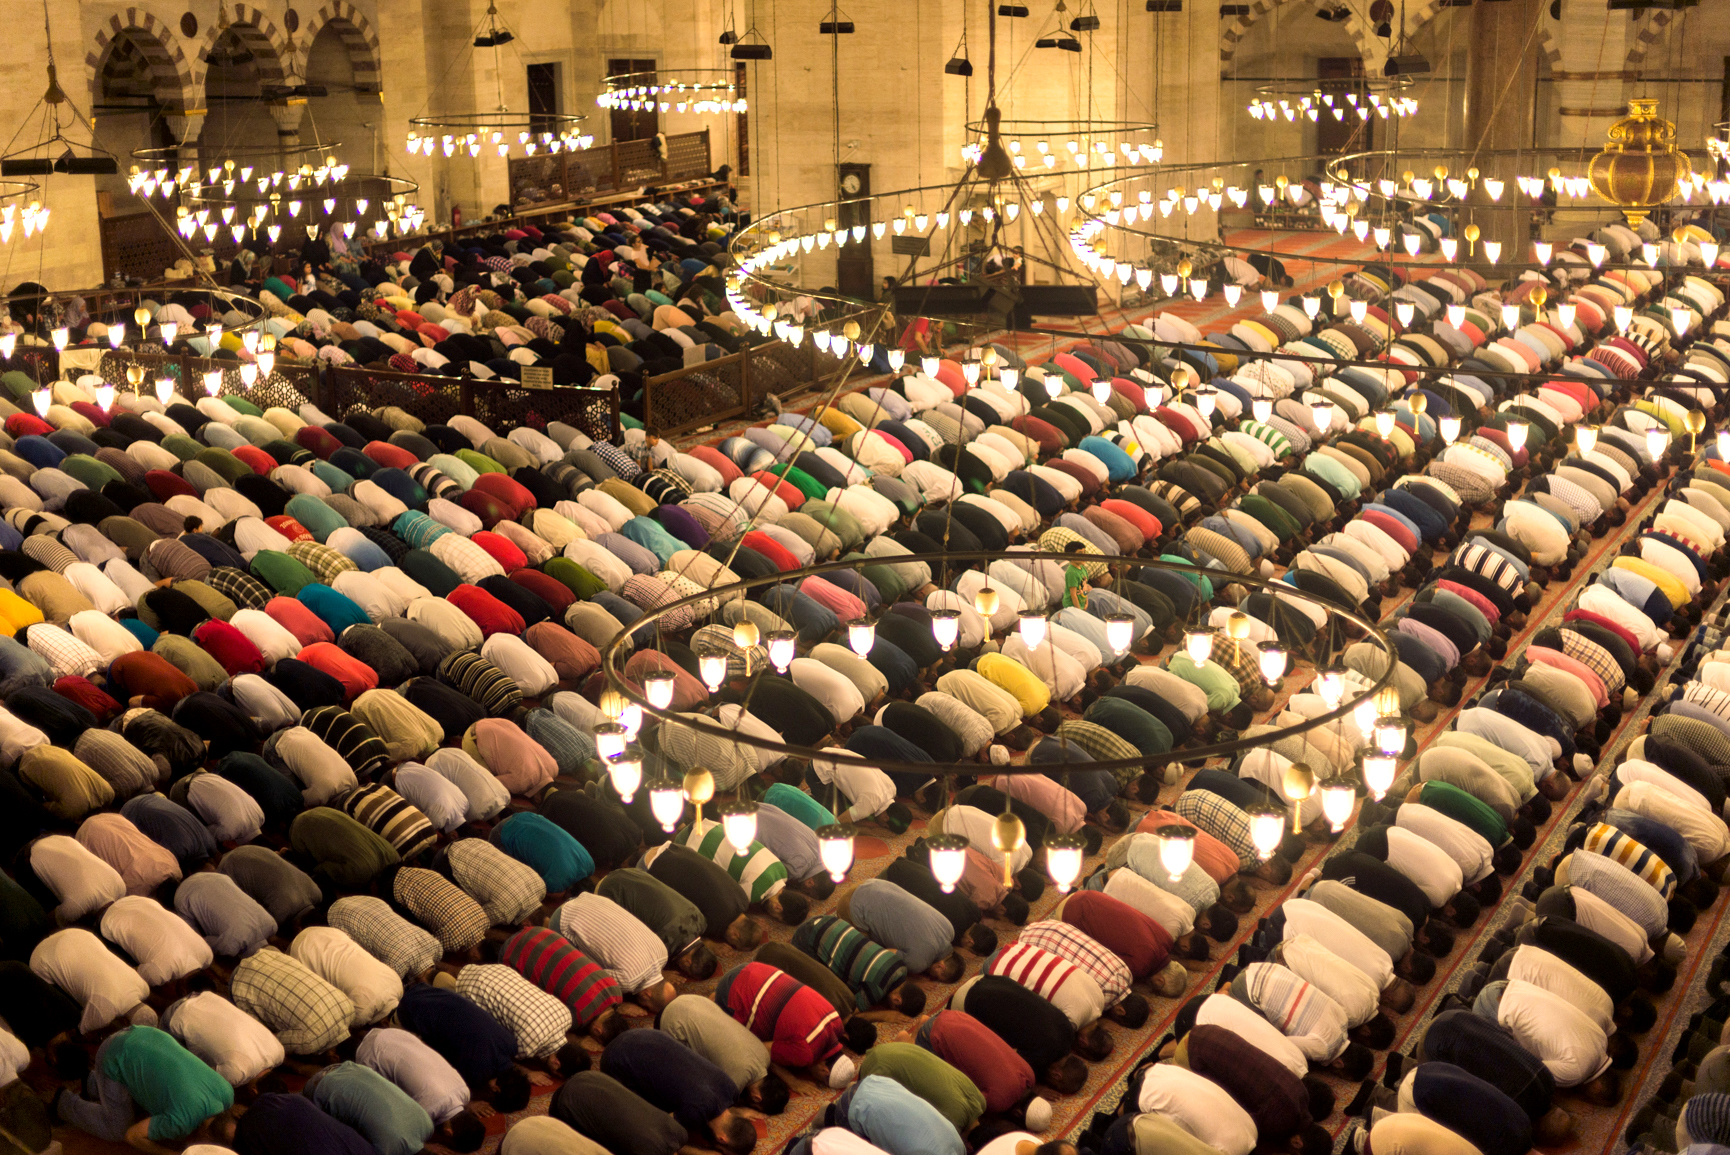 Süleymaniye mosque, from the first floor, on Friday July 1st. A special night for Muslims: Kadir gecesi (the Night of Destiny).